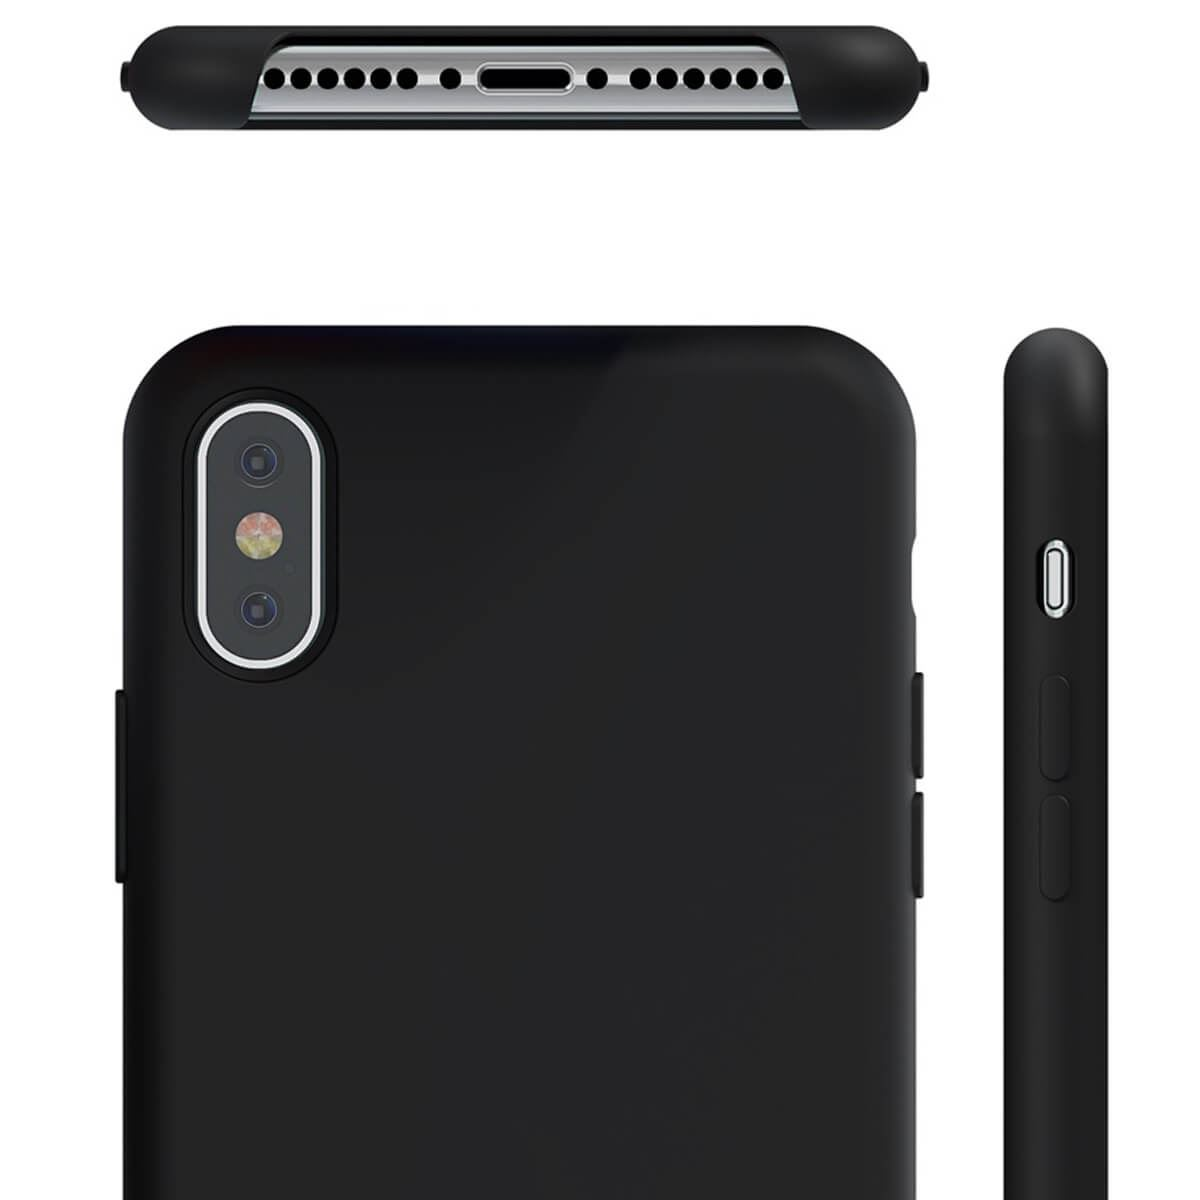 Liquid-Silicone-Phone-Case-For-Apple-iPhone-Soft-Shockproof-Matte-Back-Cover thumbnail 3